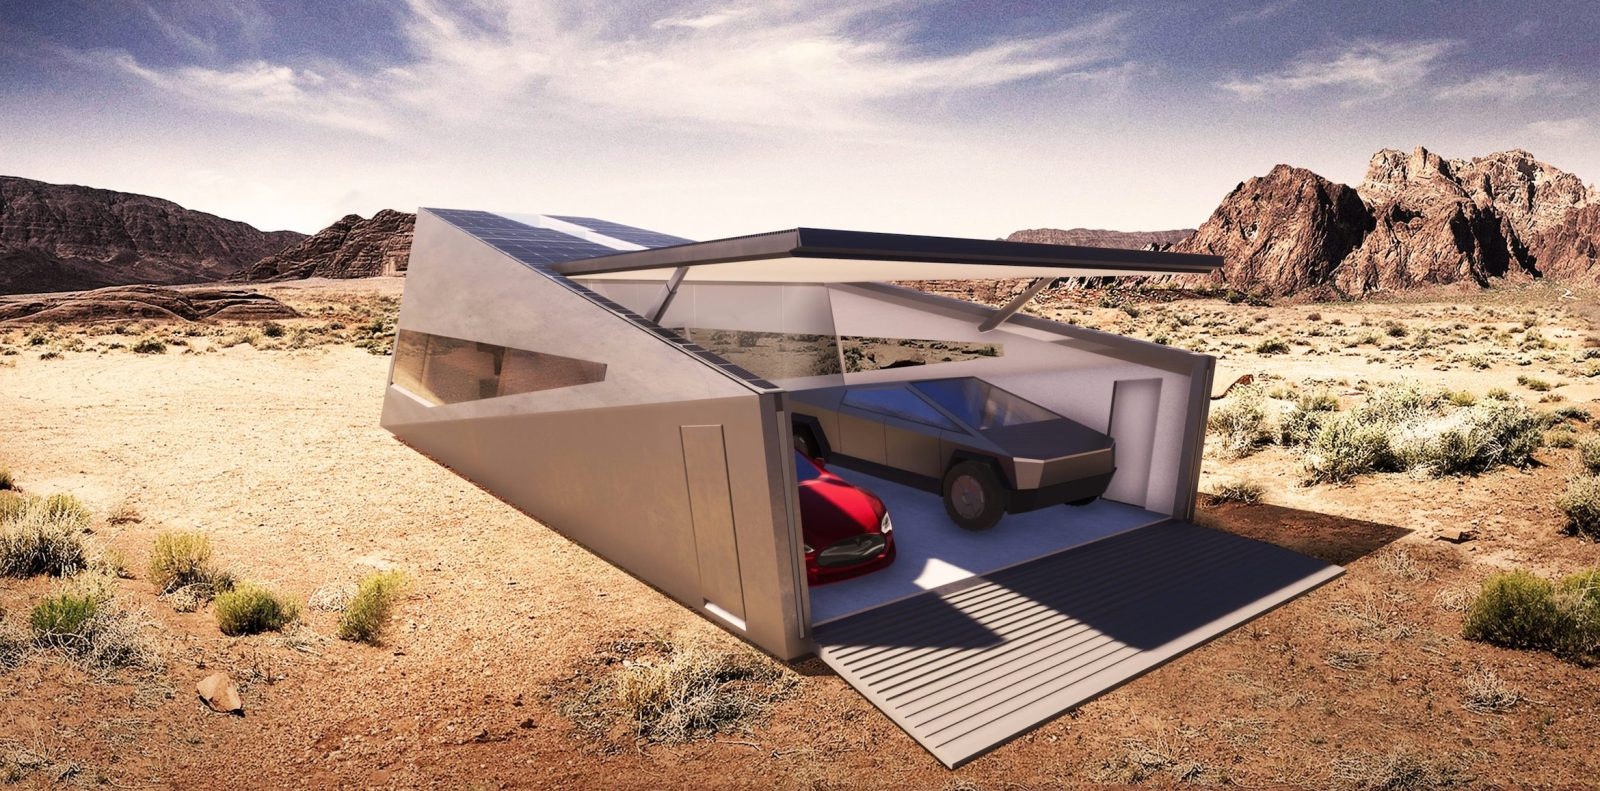 Tesla Cybertruck now even gets its own garage: Cybunker